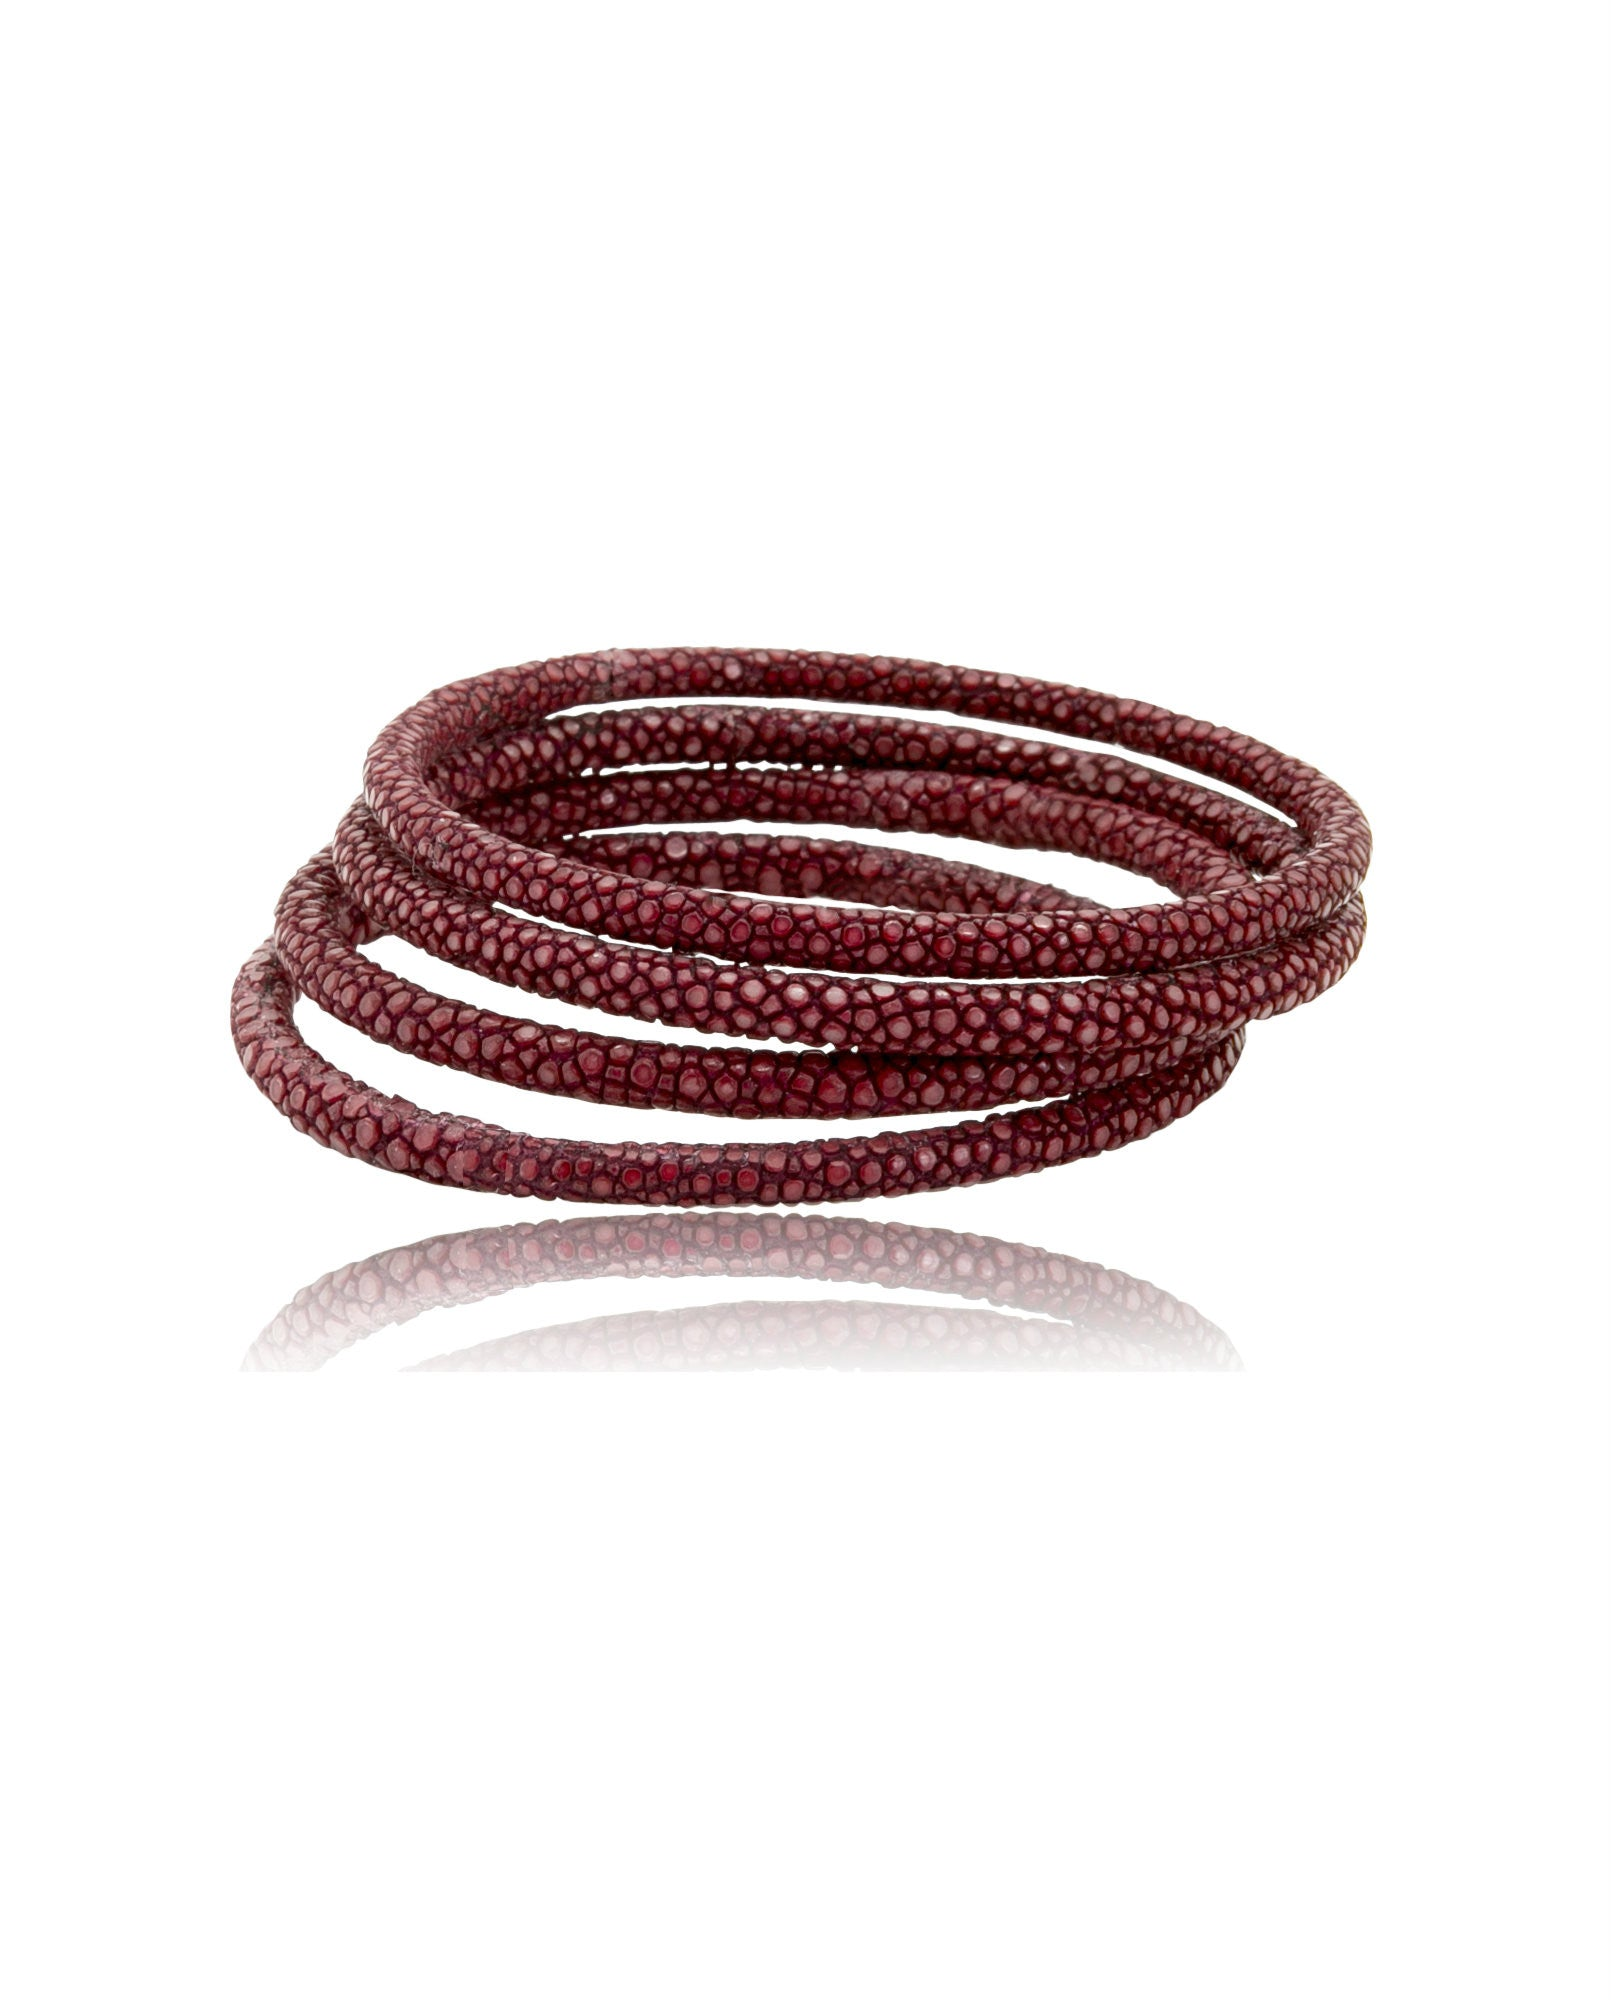 Elan Bijoux - Bordeaux Galuchat Stack Bangle Set - The Velvet Closet